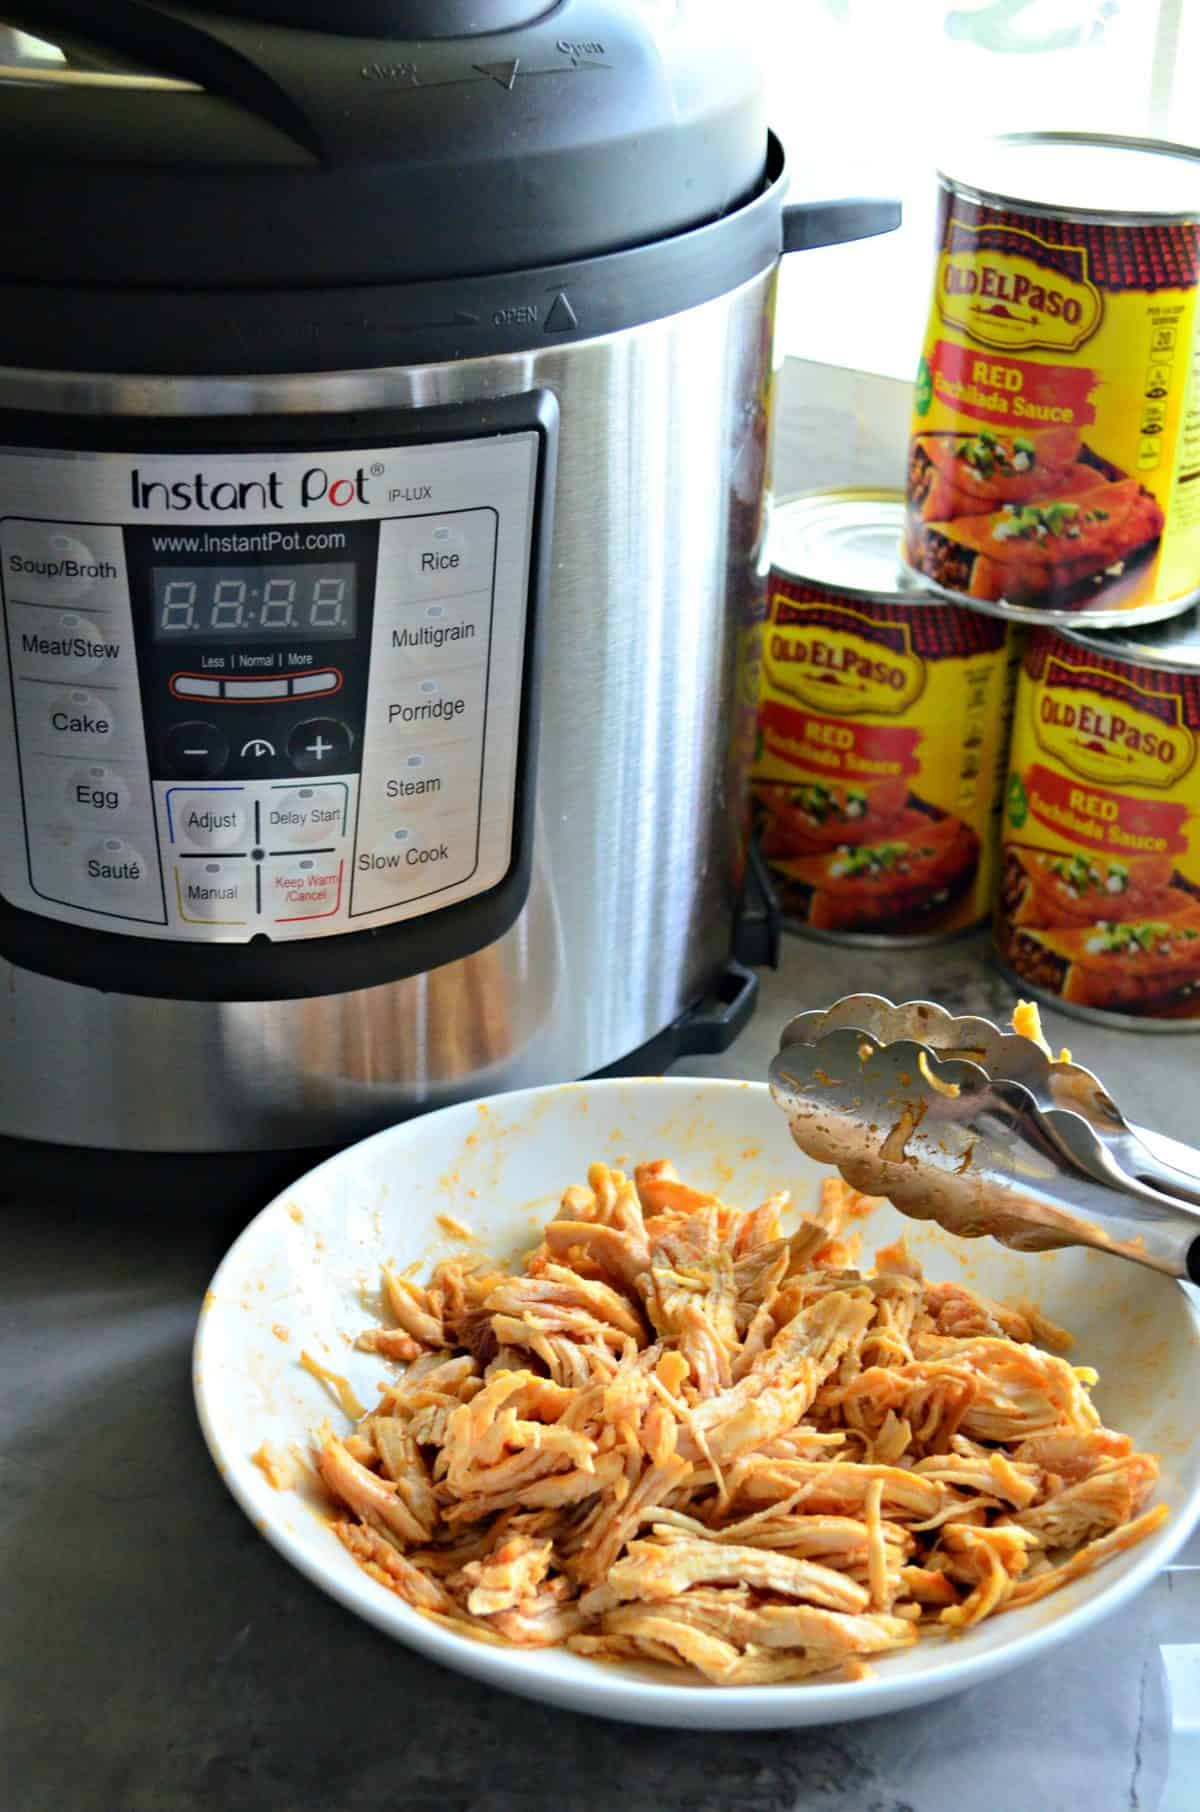 white bowl of shredded chicken with orange/red sauce and tongues on countertop in front of instant pot.